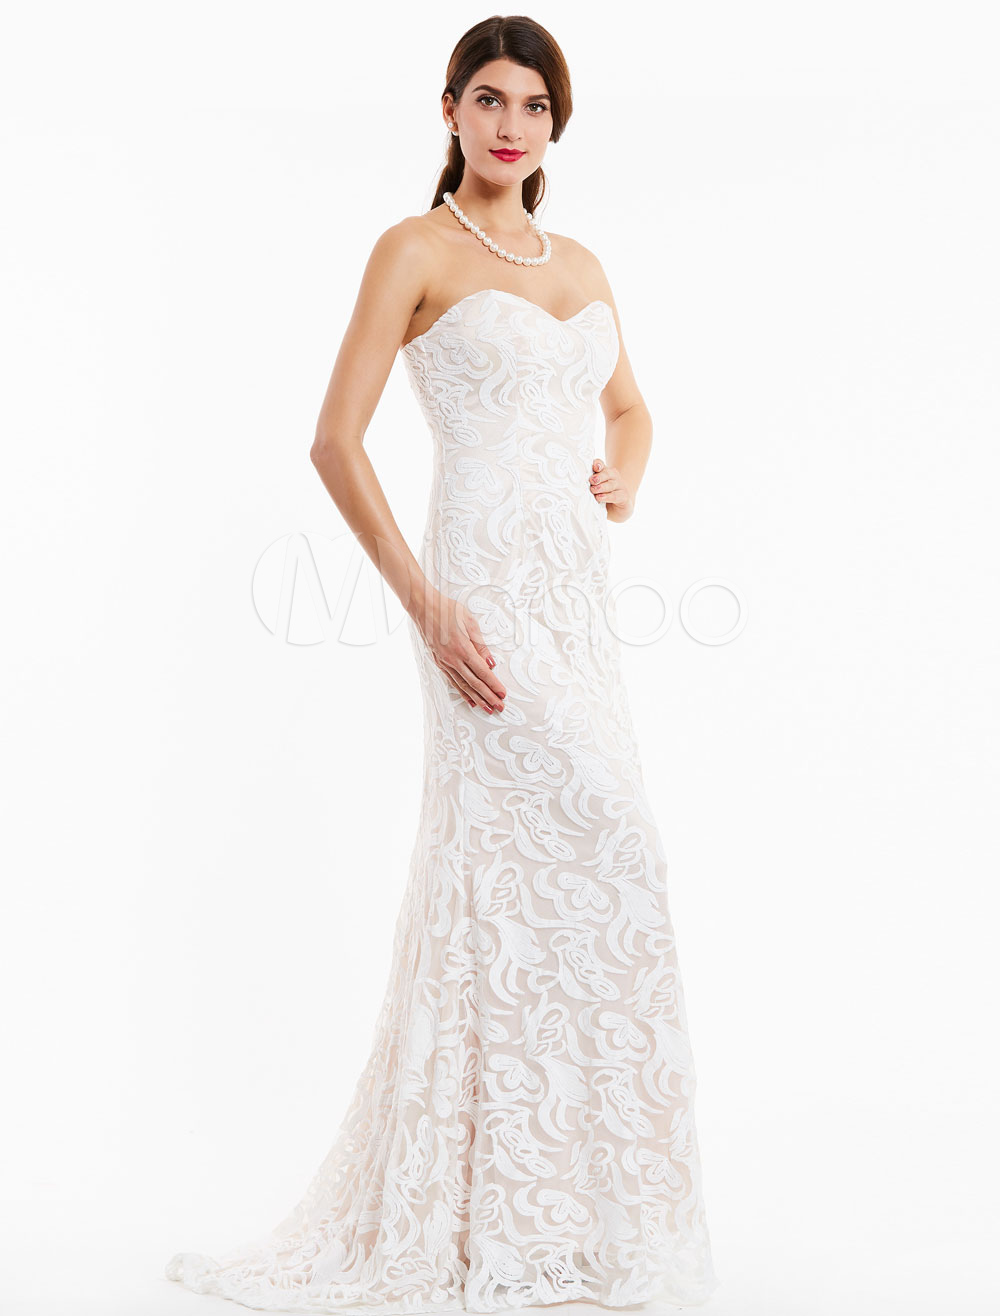 Buy Lace Evening Dresses Ivory Strapless Prom Gown Mermaid Sweetheart Neckline Formal Dress With Train for $97.89 in Milanoo store